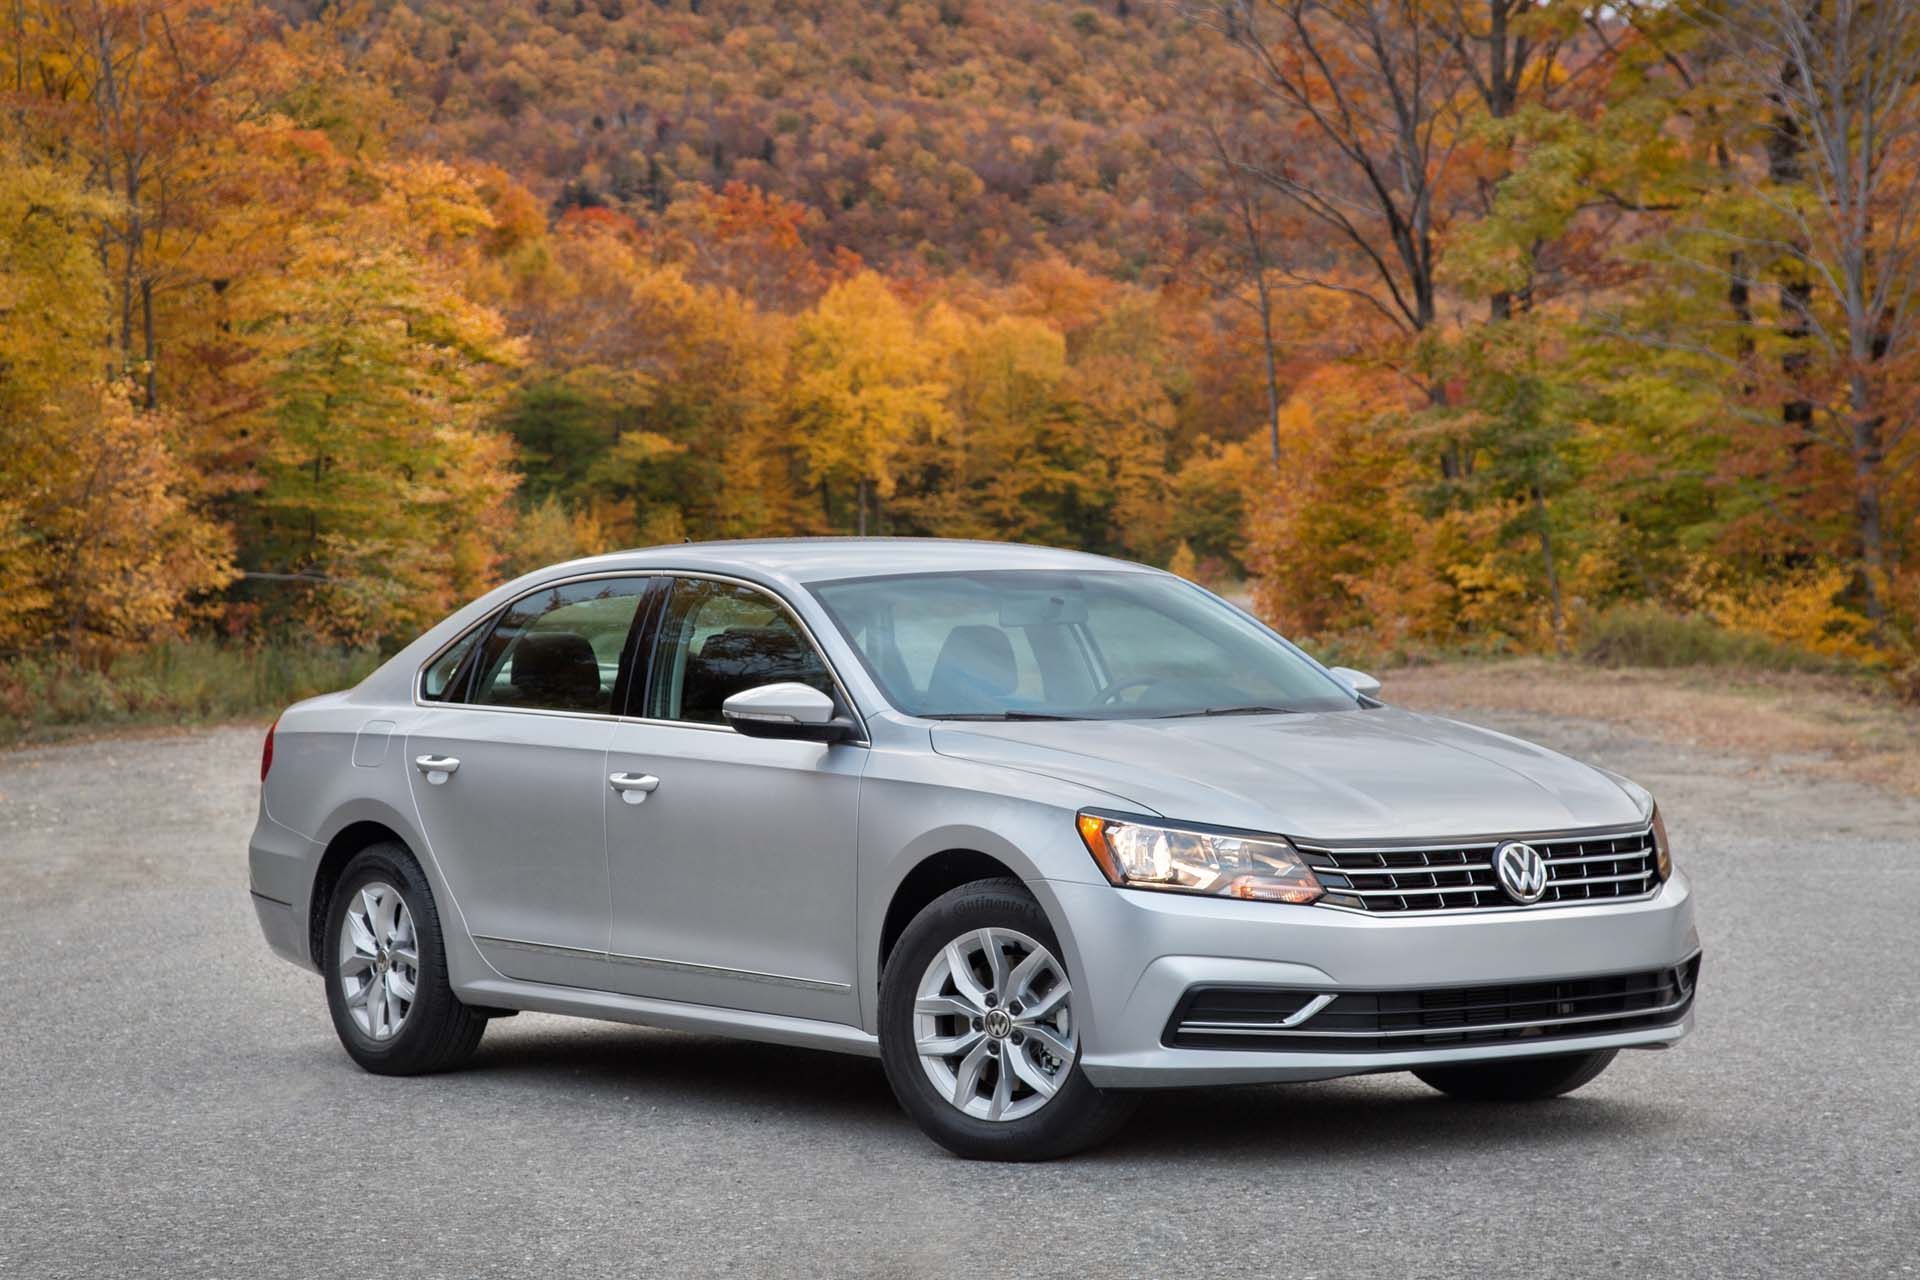 2017 volkswagen passat recalled over brake fluid leak. Black Bedroom Furniture Sets. Home Design Ideas